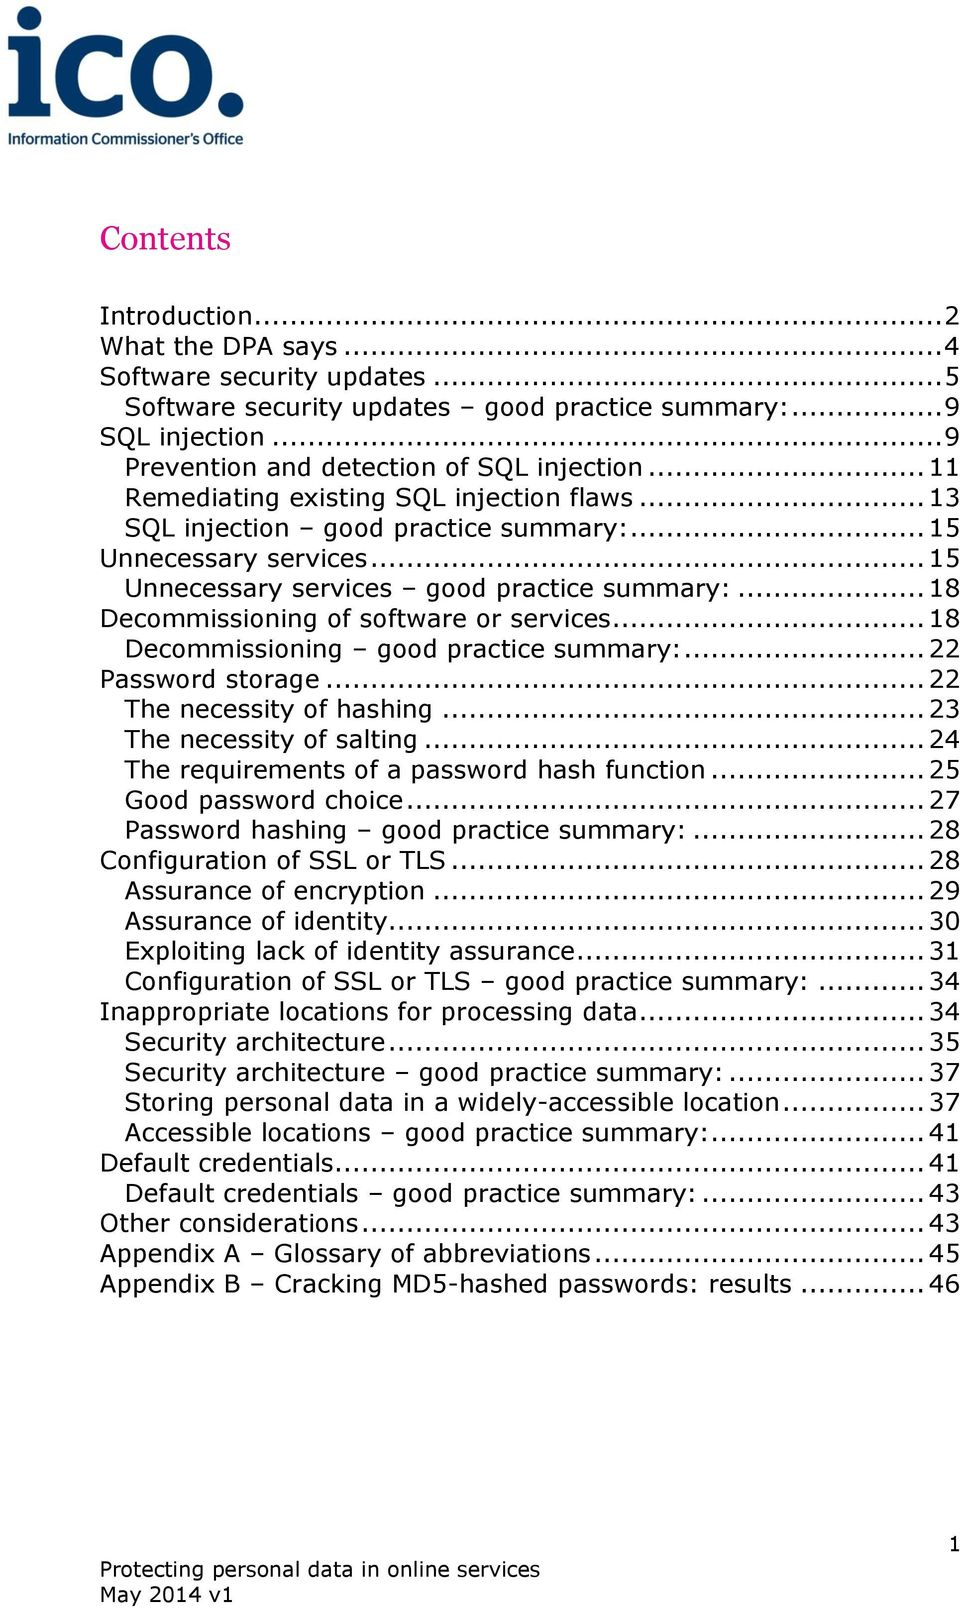 .. 18 Decommissioning of software or services... 18 Decommissioning good practice summary:... 22 Password storage... 22 The necessity of hashing... 23 The necessity of salting.